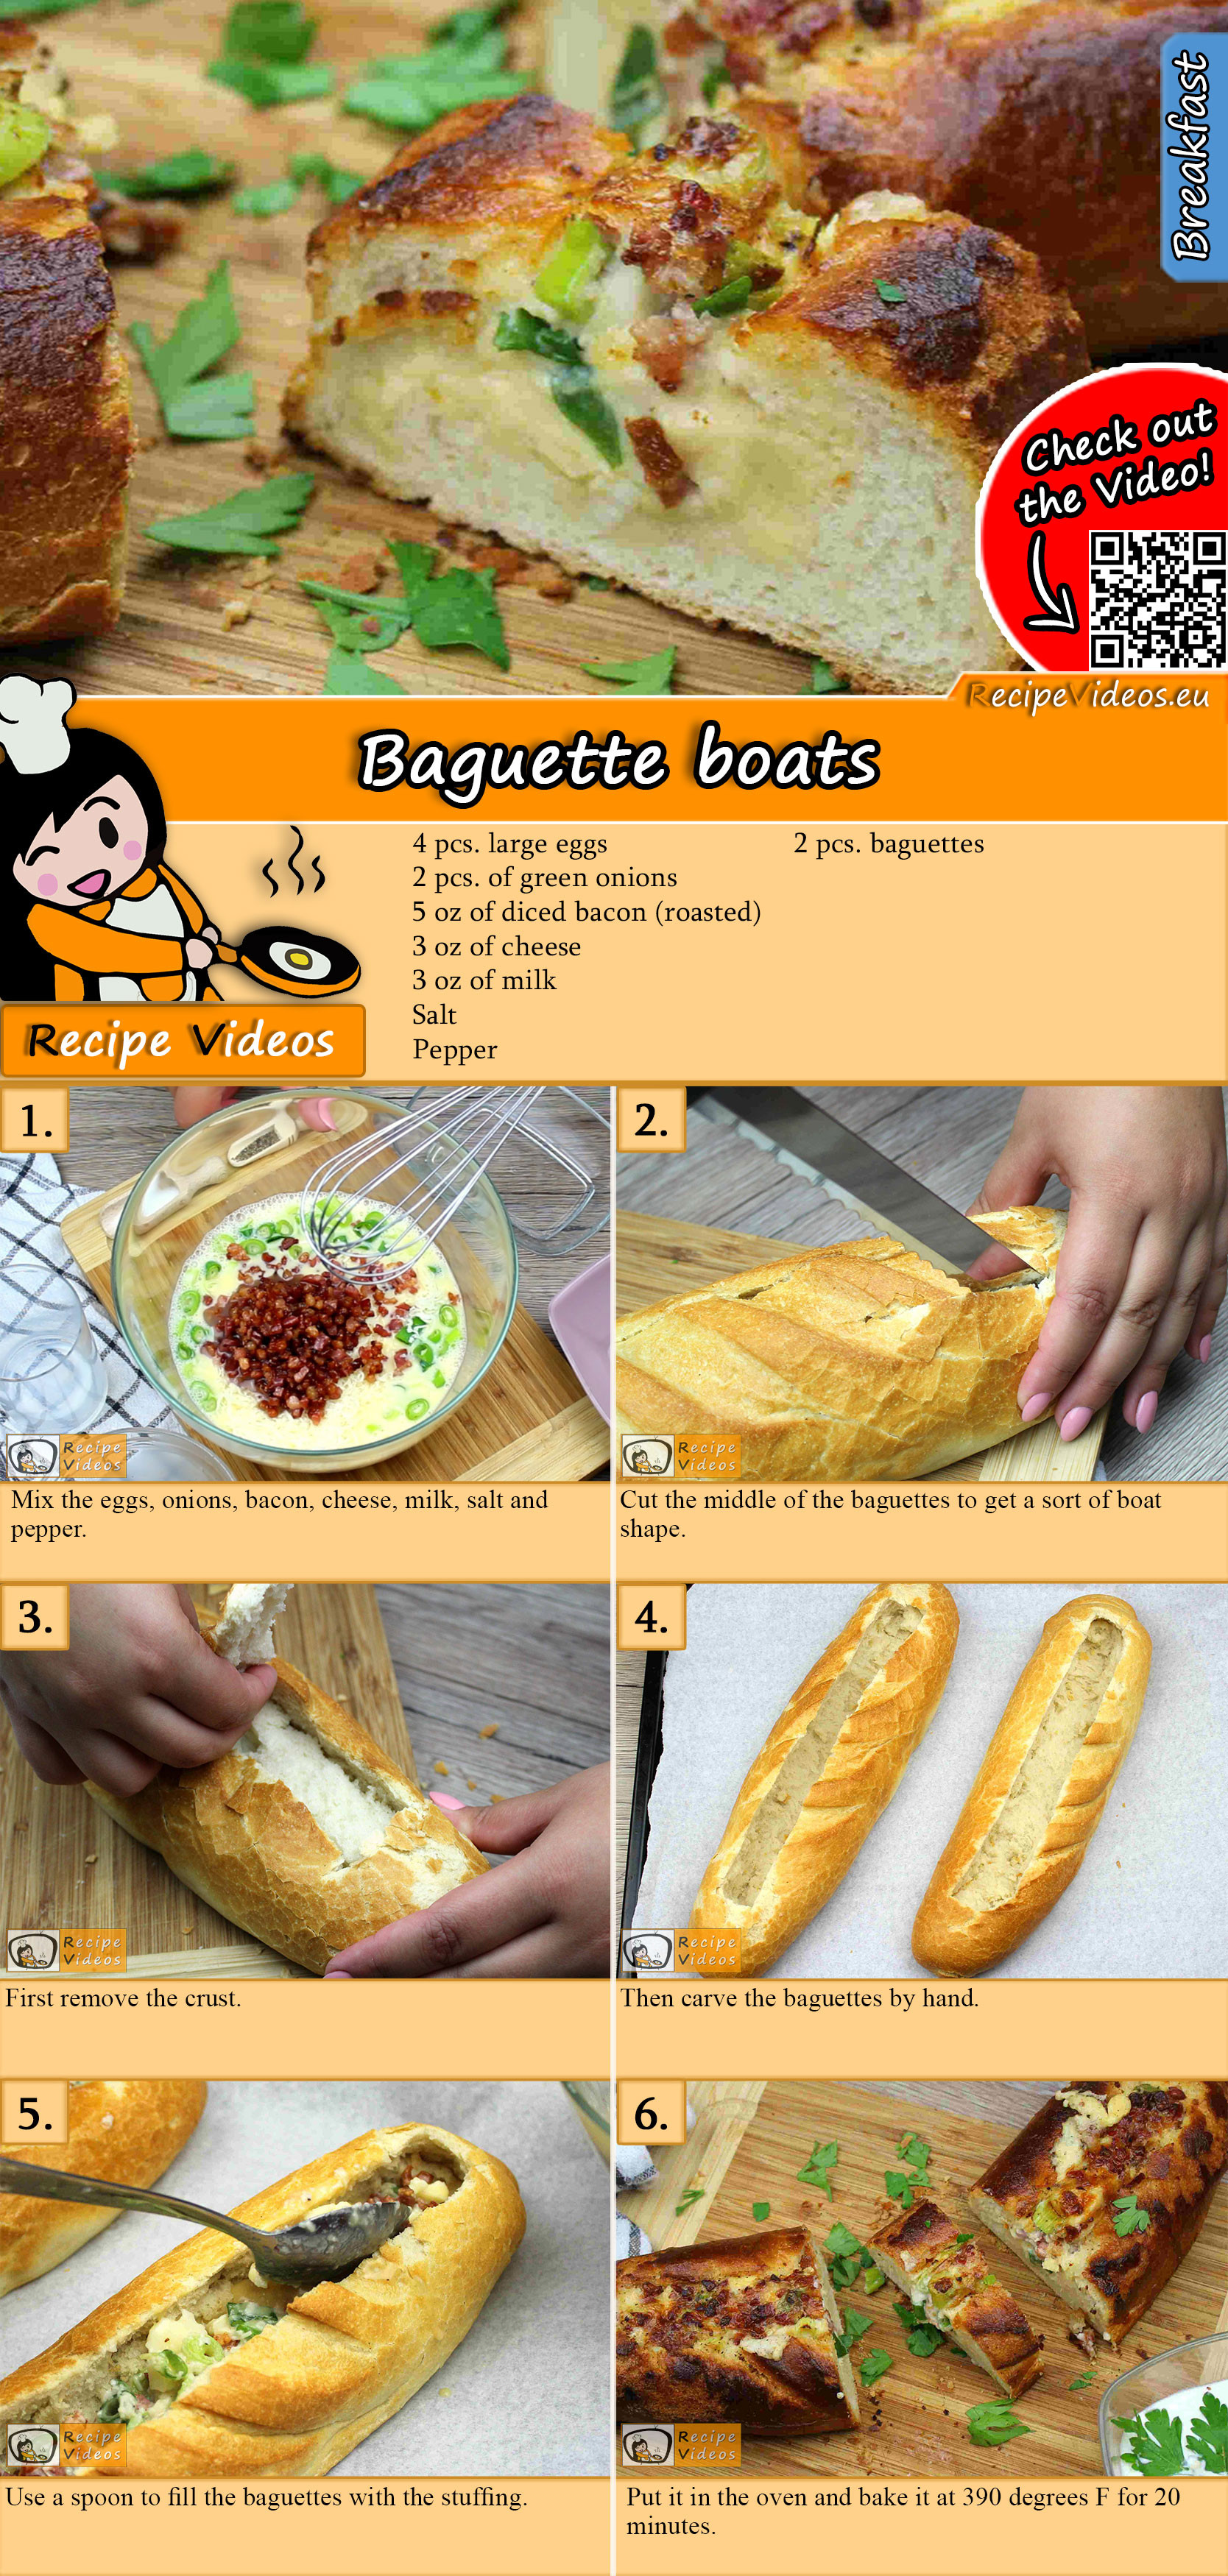 Baguette boats recipe with video